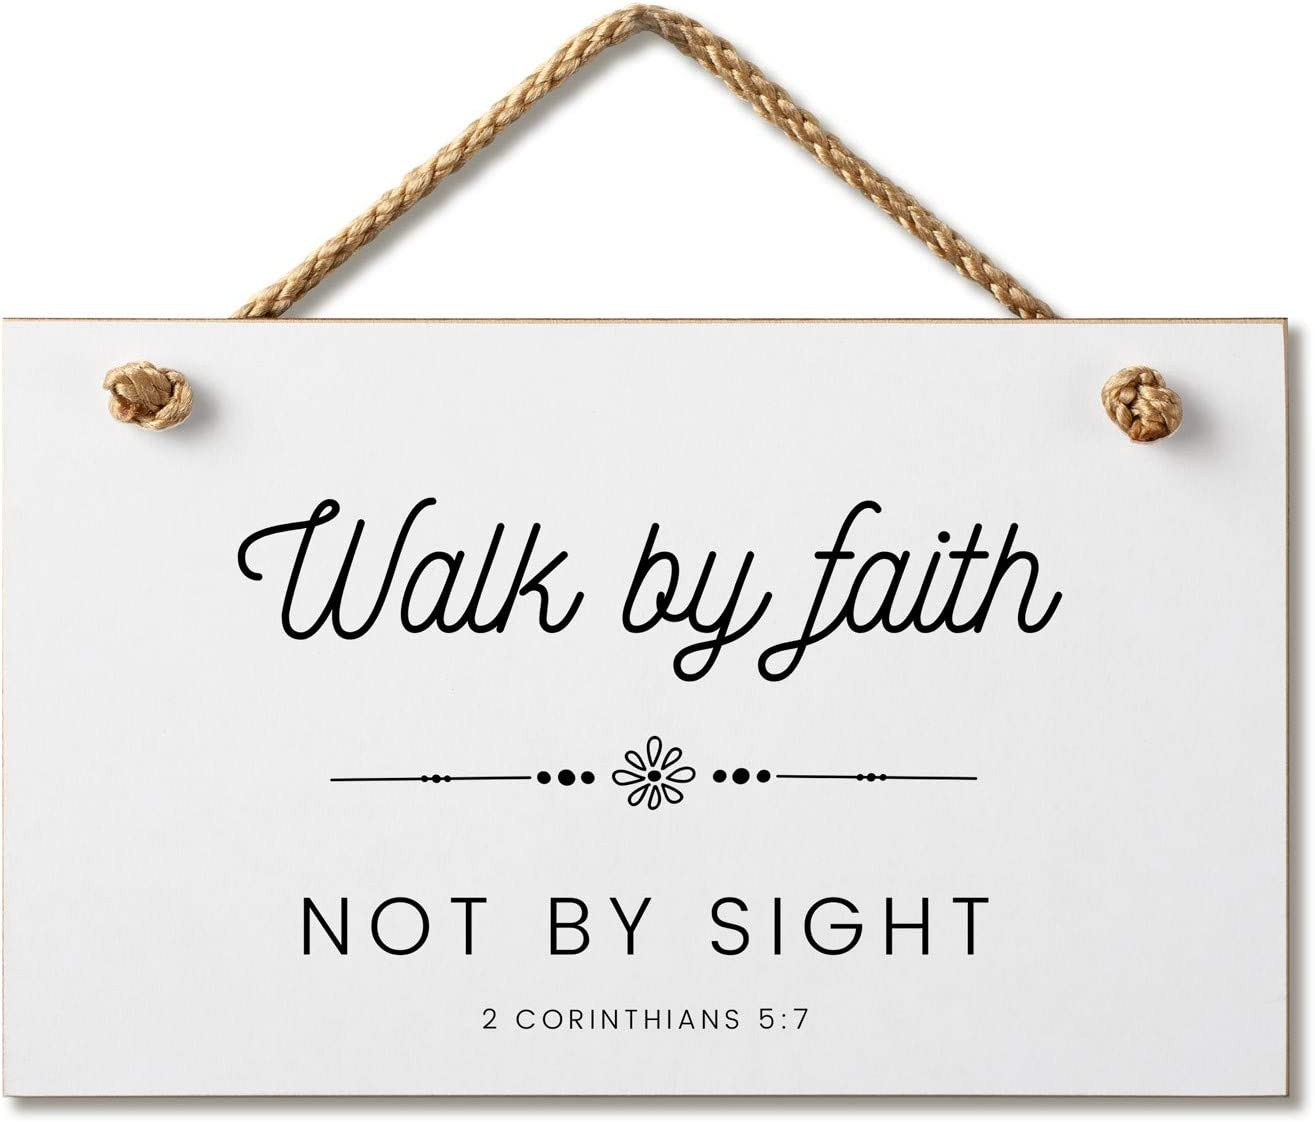 Marvin Gardens Designs Farmhouse Style Bible Verse Wall Decor Wood Sign 9.5 x 5.5 Inch Wood Made in The USA (Walk by Faith (White), 9.5 x 5.5)